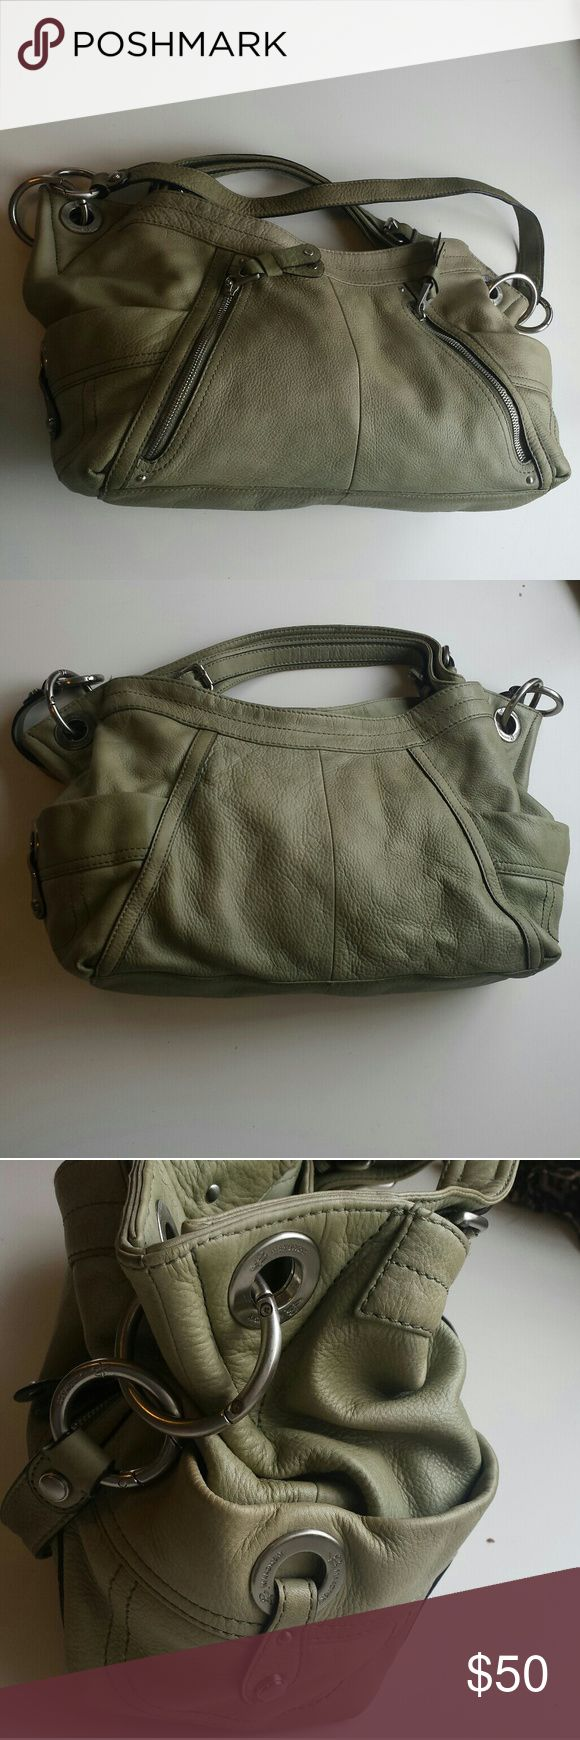 "B. Makowsky purse Olive green large shoulder bag. 100% leather with heavy silver tone hardware and has magnet closures to main compartment and both side pouches. A little discoloration to the leather due to normal wear (it would look great after a good cleaning).  Small pen marks (3-4) on the inside flap shown in last picture.  10"" Tall 20""  At its widest which is the top 4""  Space width b. makowsky Bags Shoulder Bags"